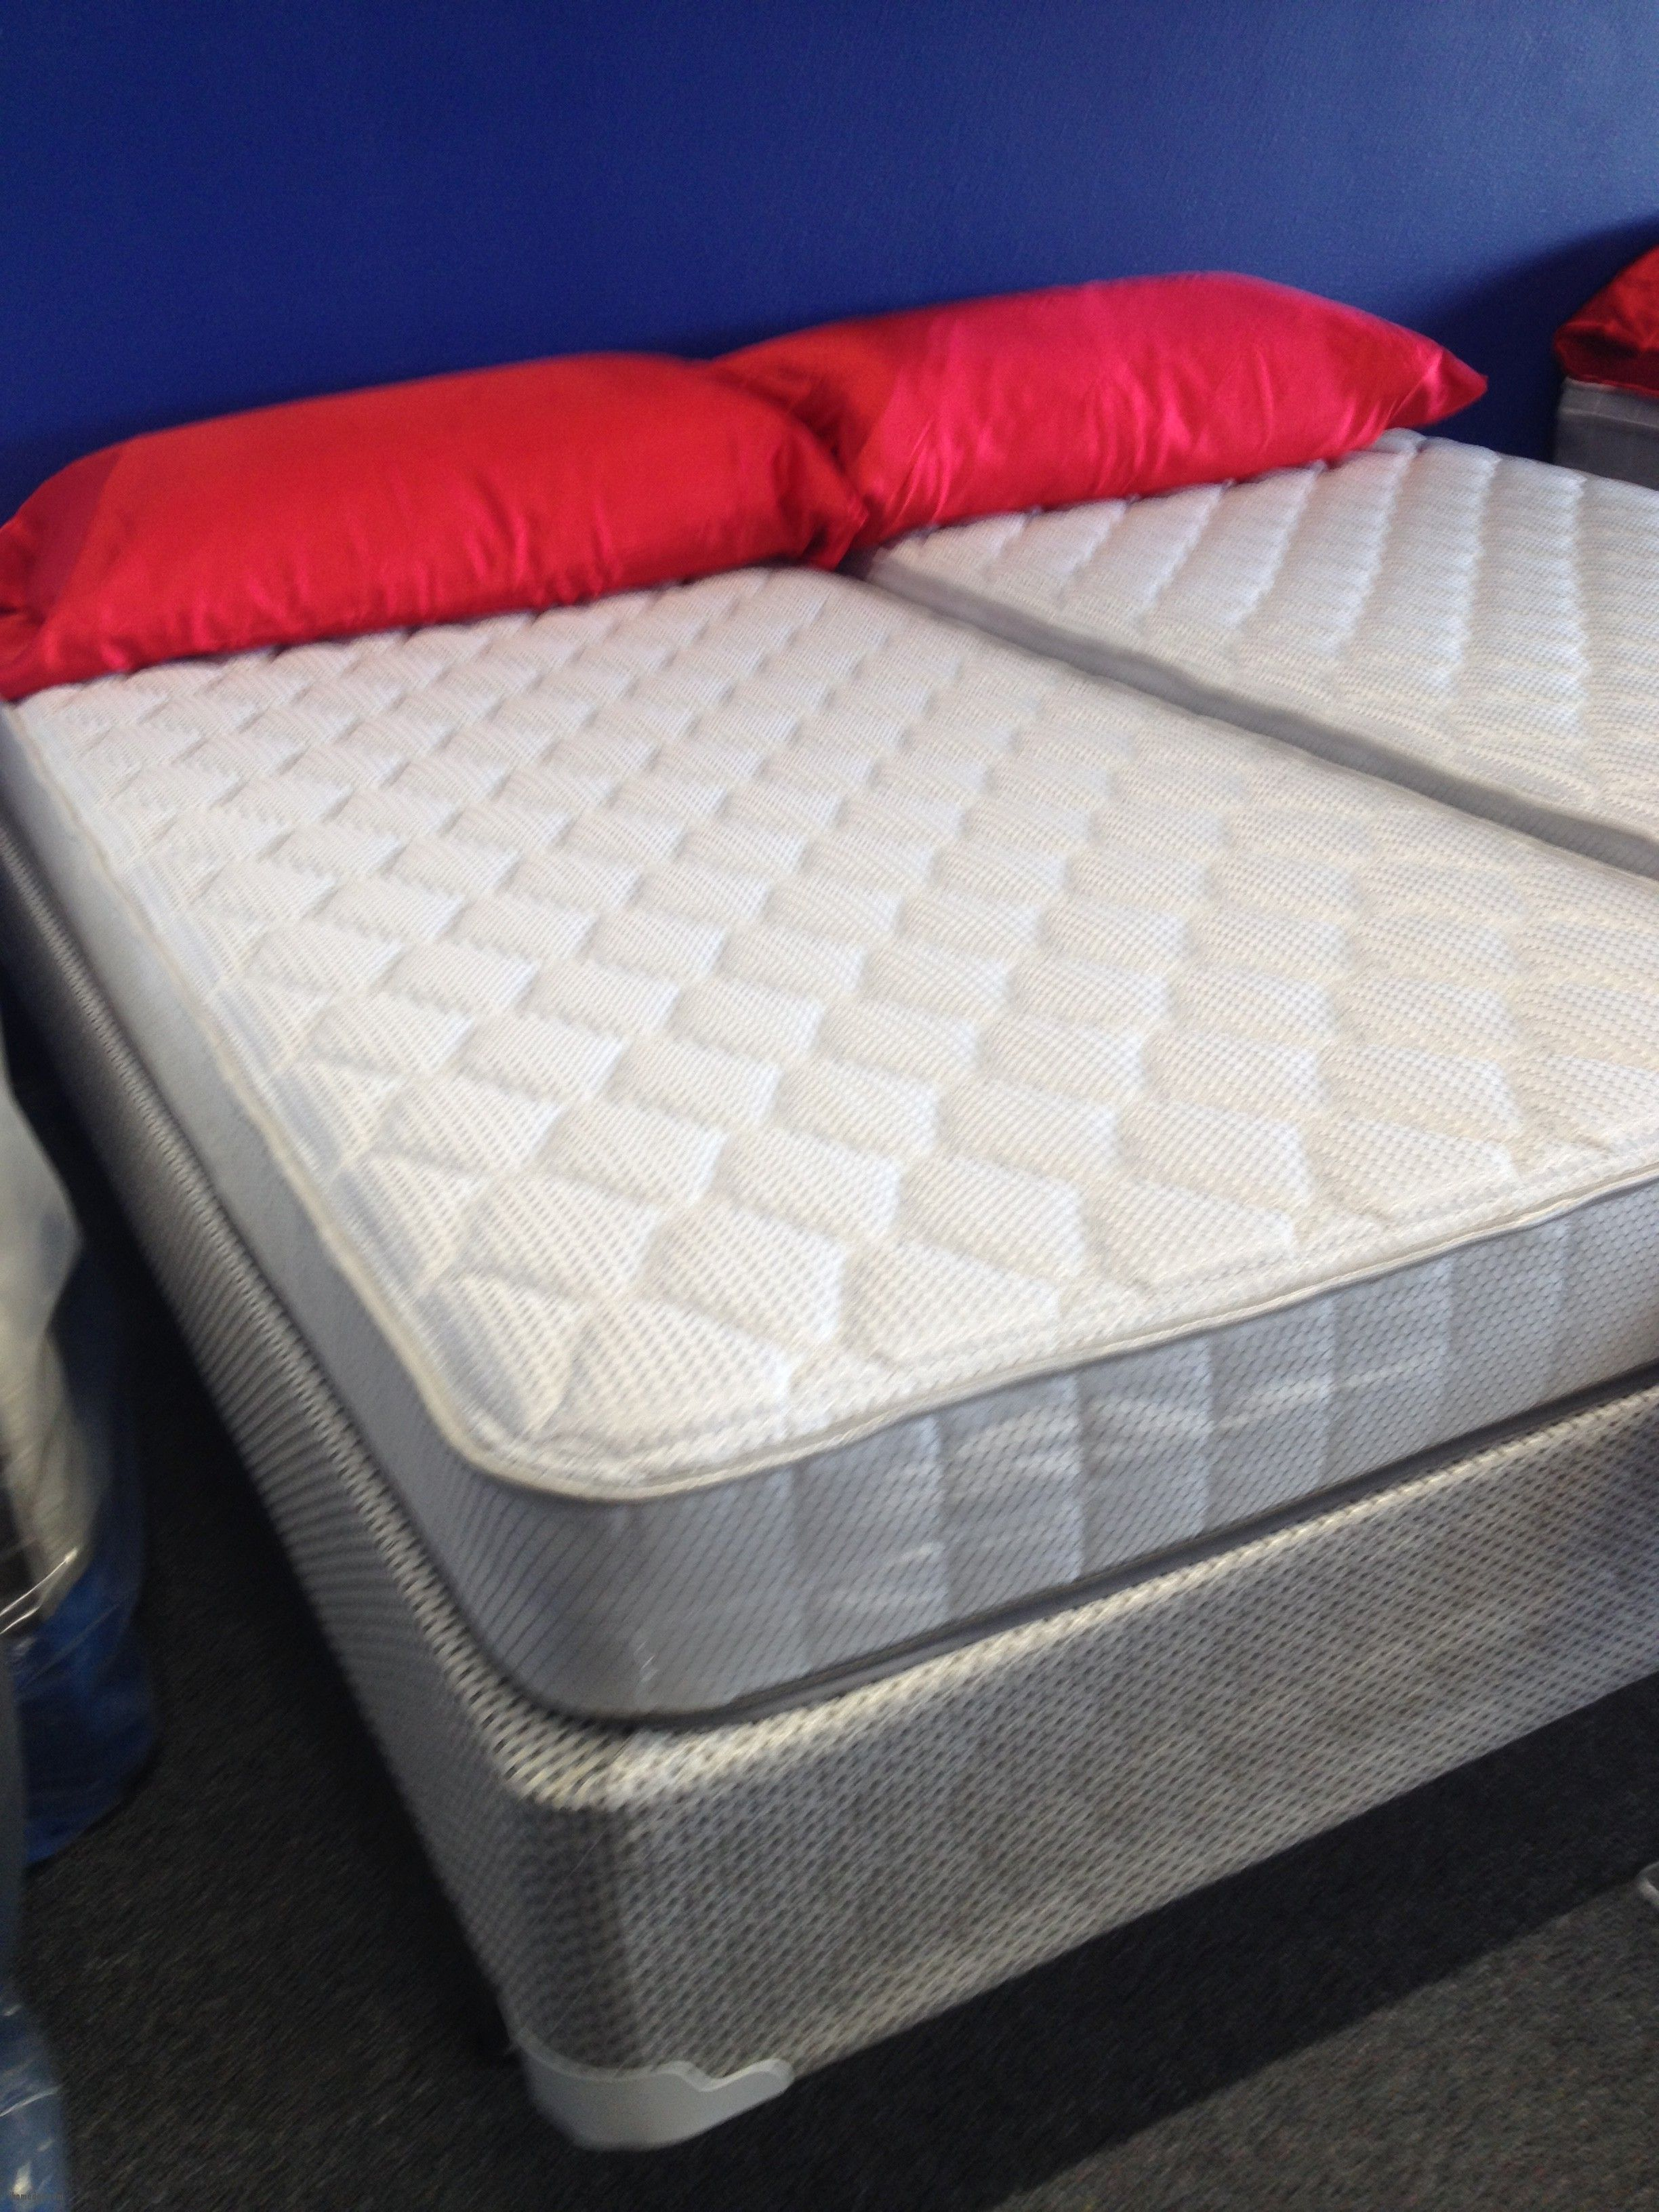 this premium quality mattress is built with 1000 pocket springs